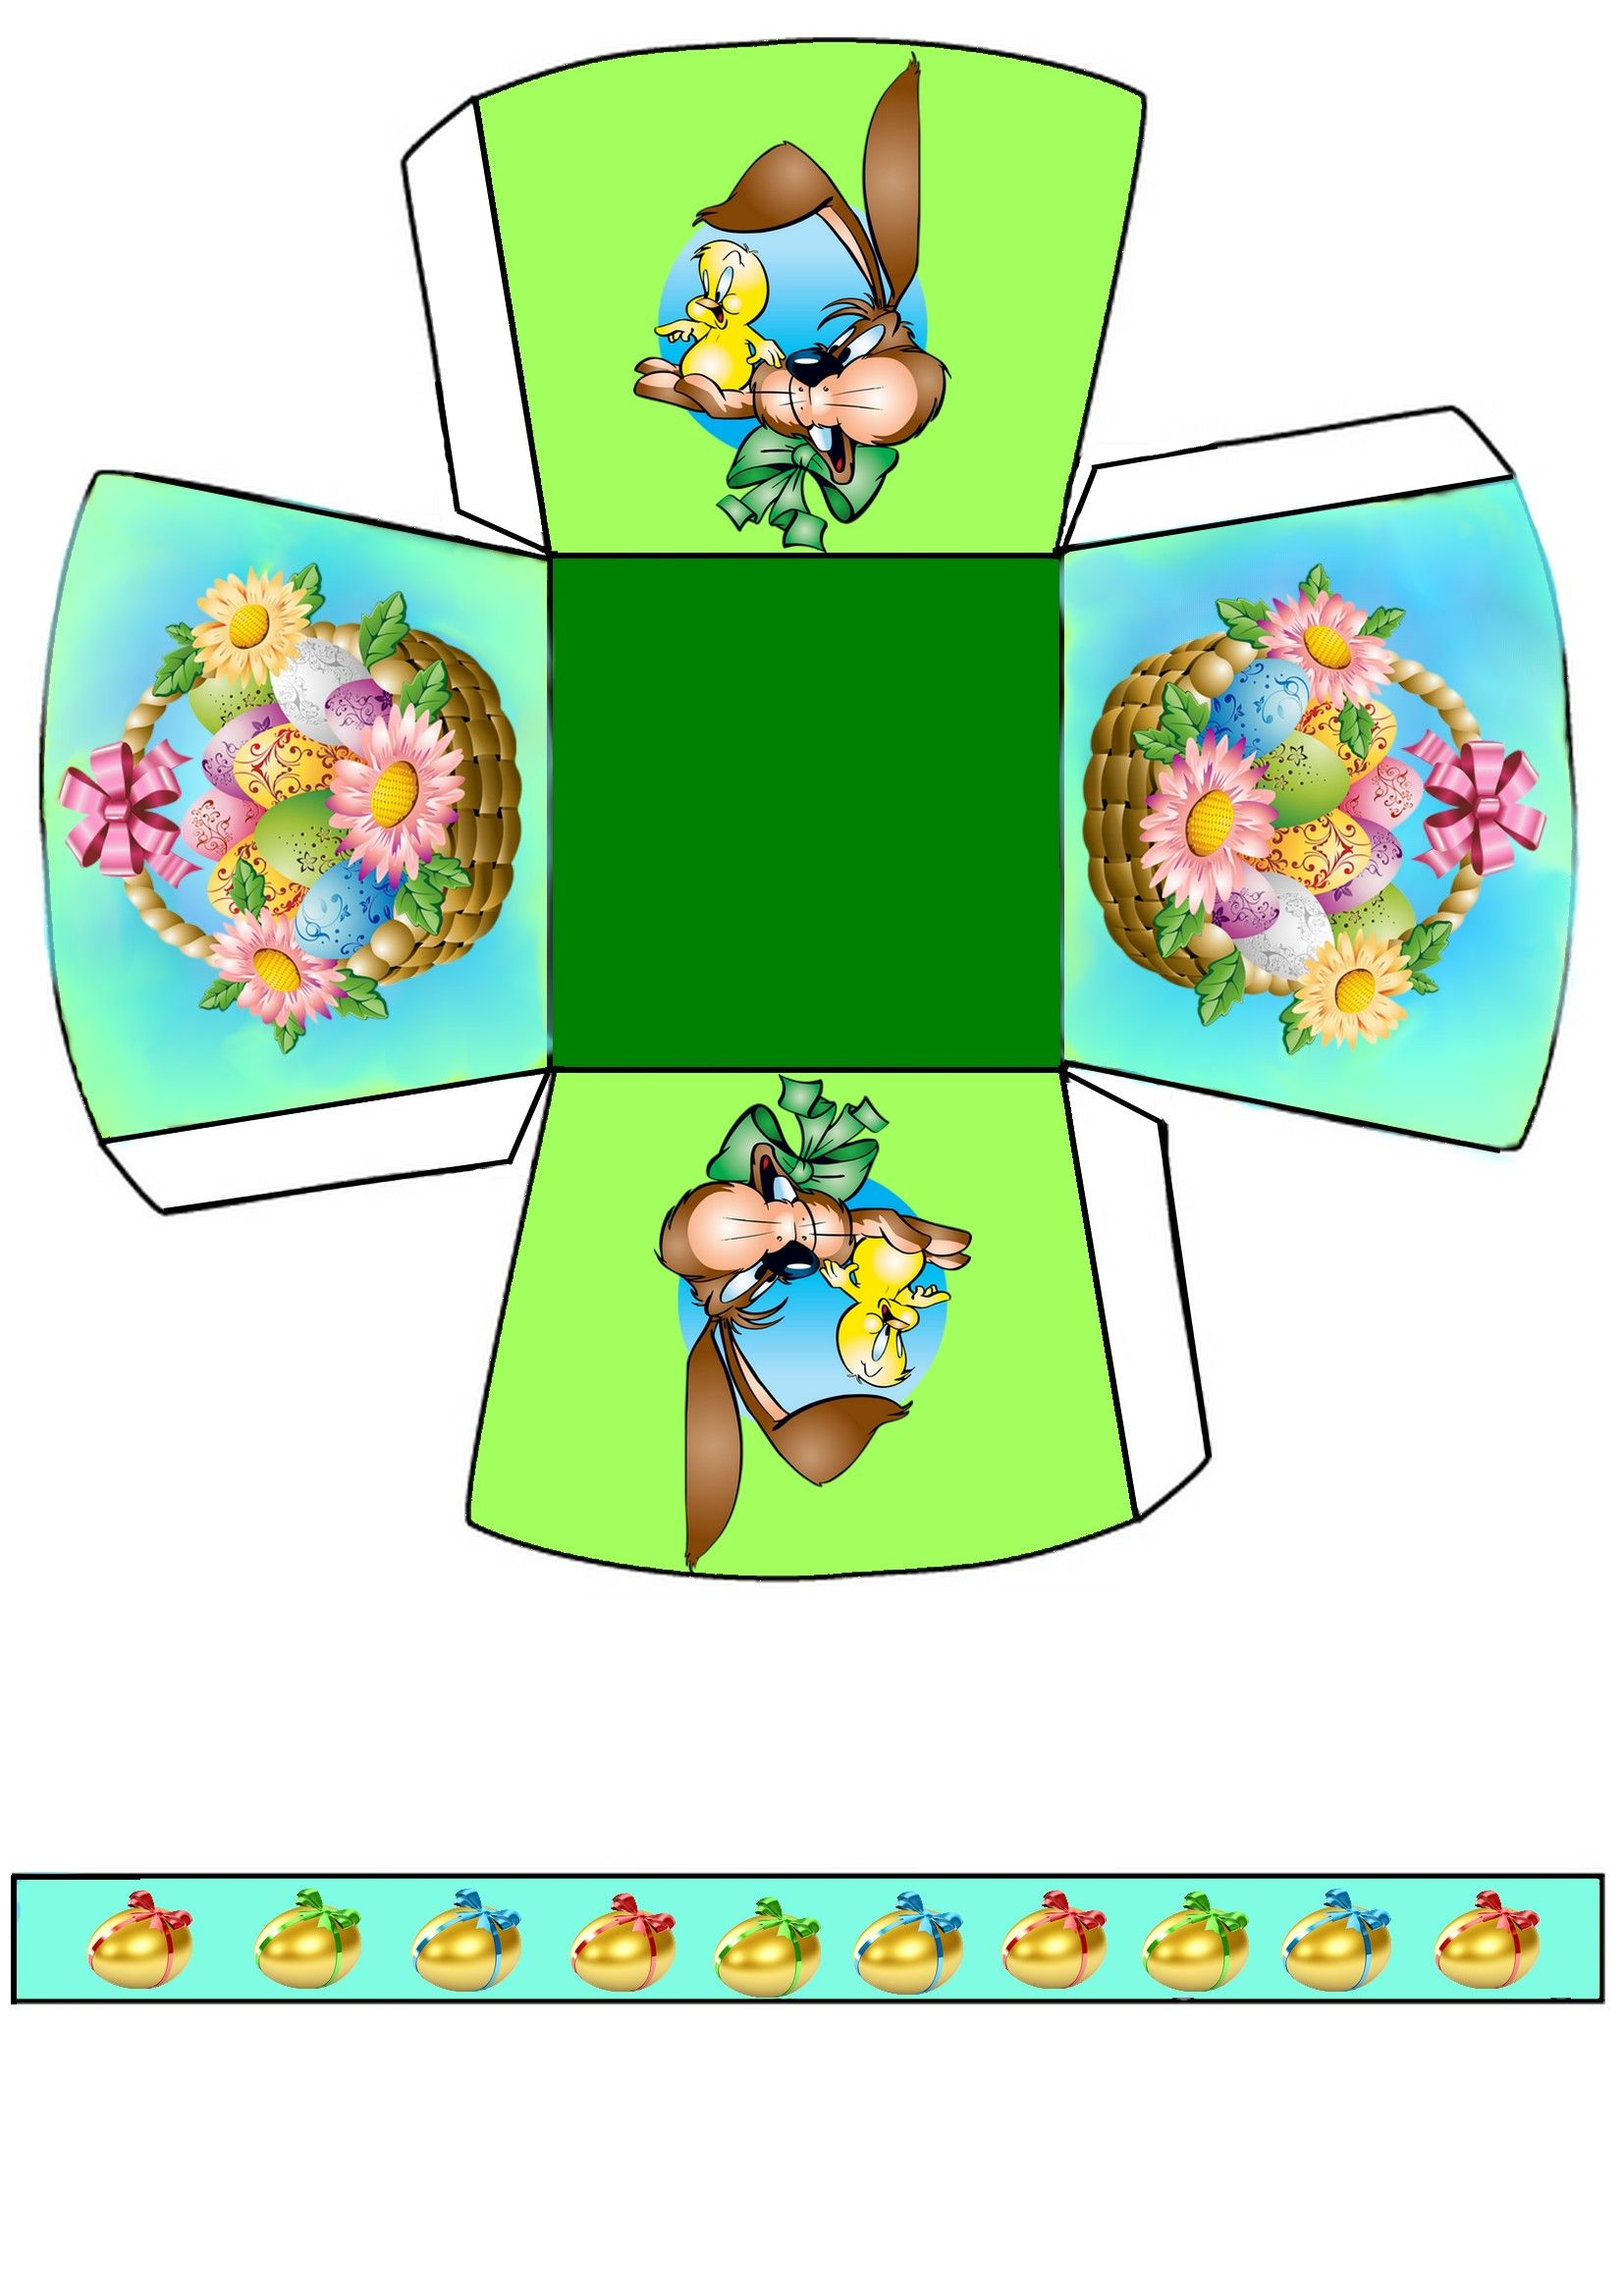 Pin by chris on Easter decorations Pinterest